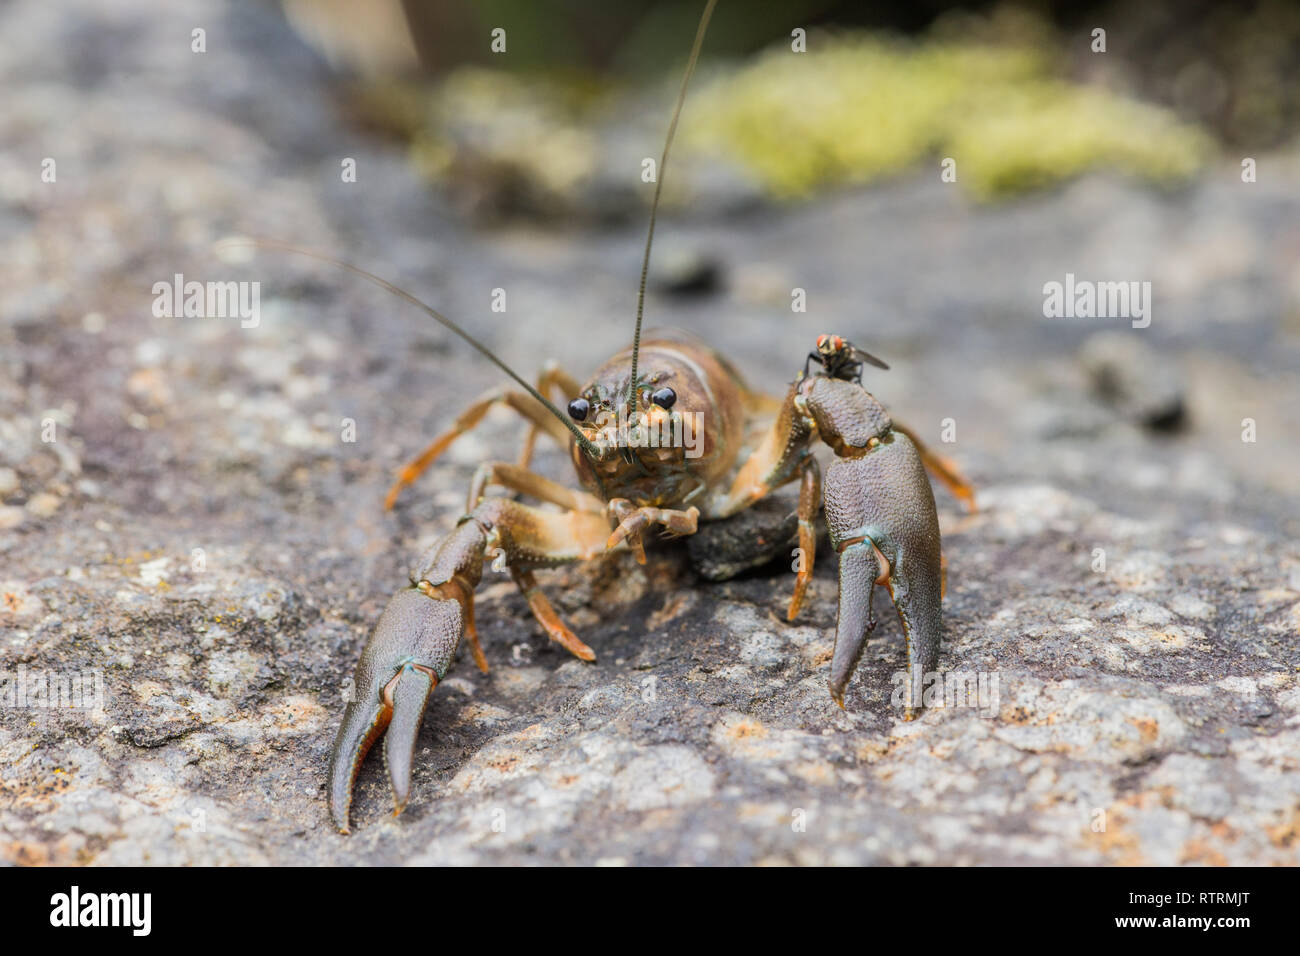 A signal crayfish (Pacifastacus leniusculus) an Introduced species in Europe - Stock Image